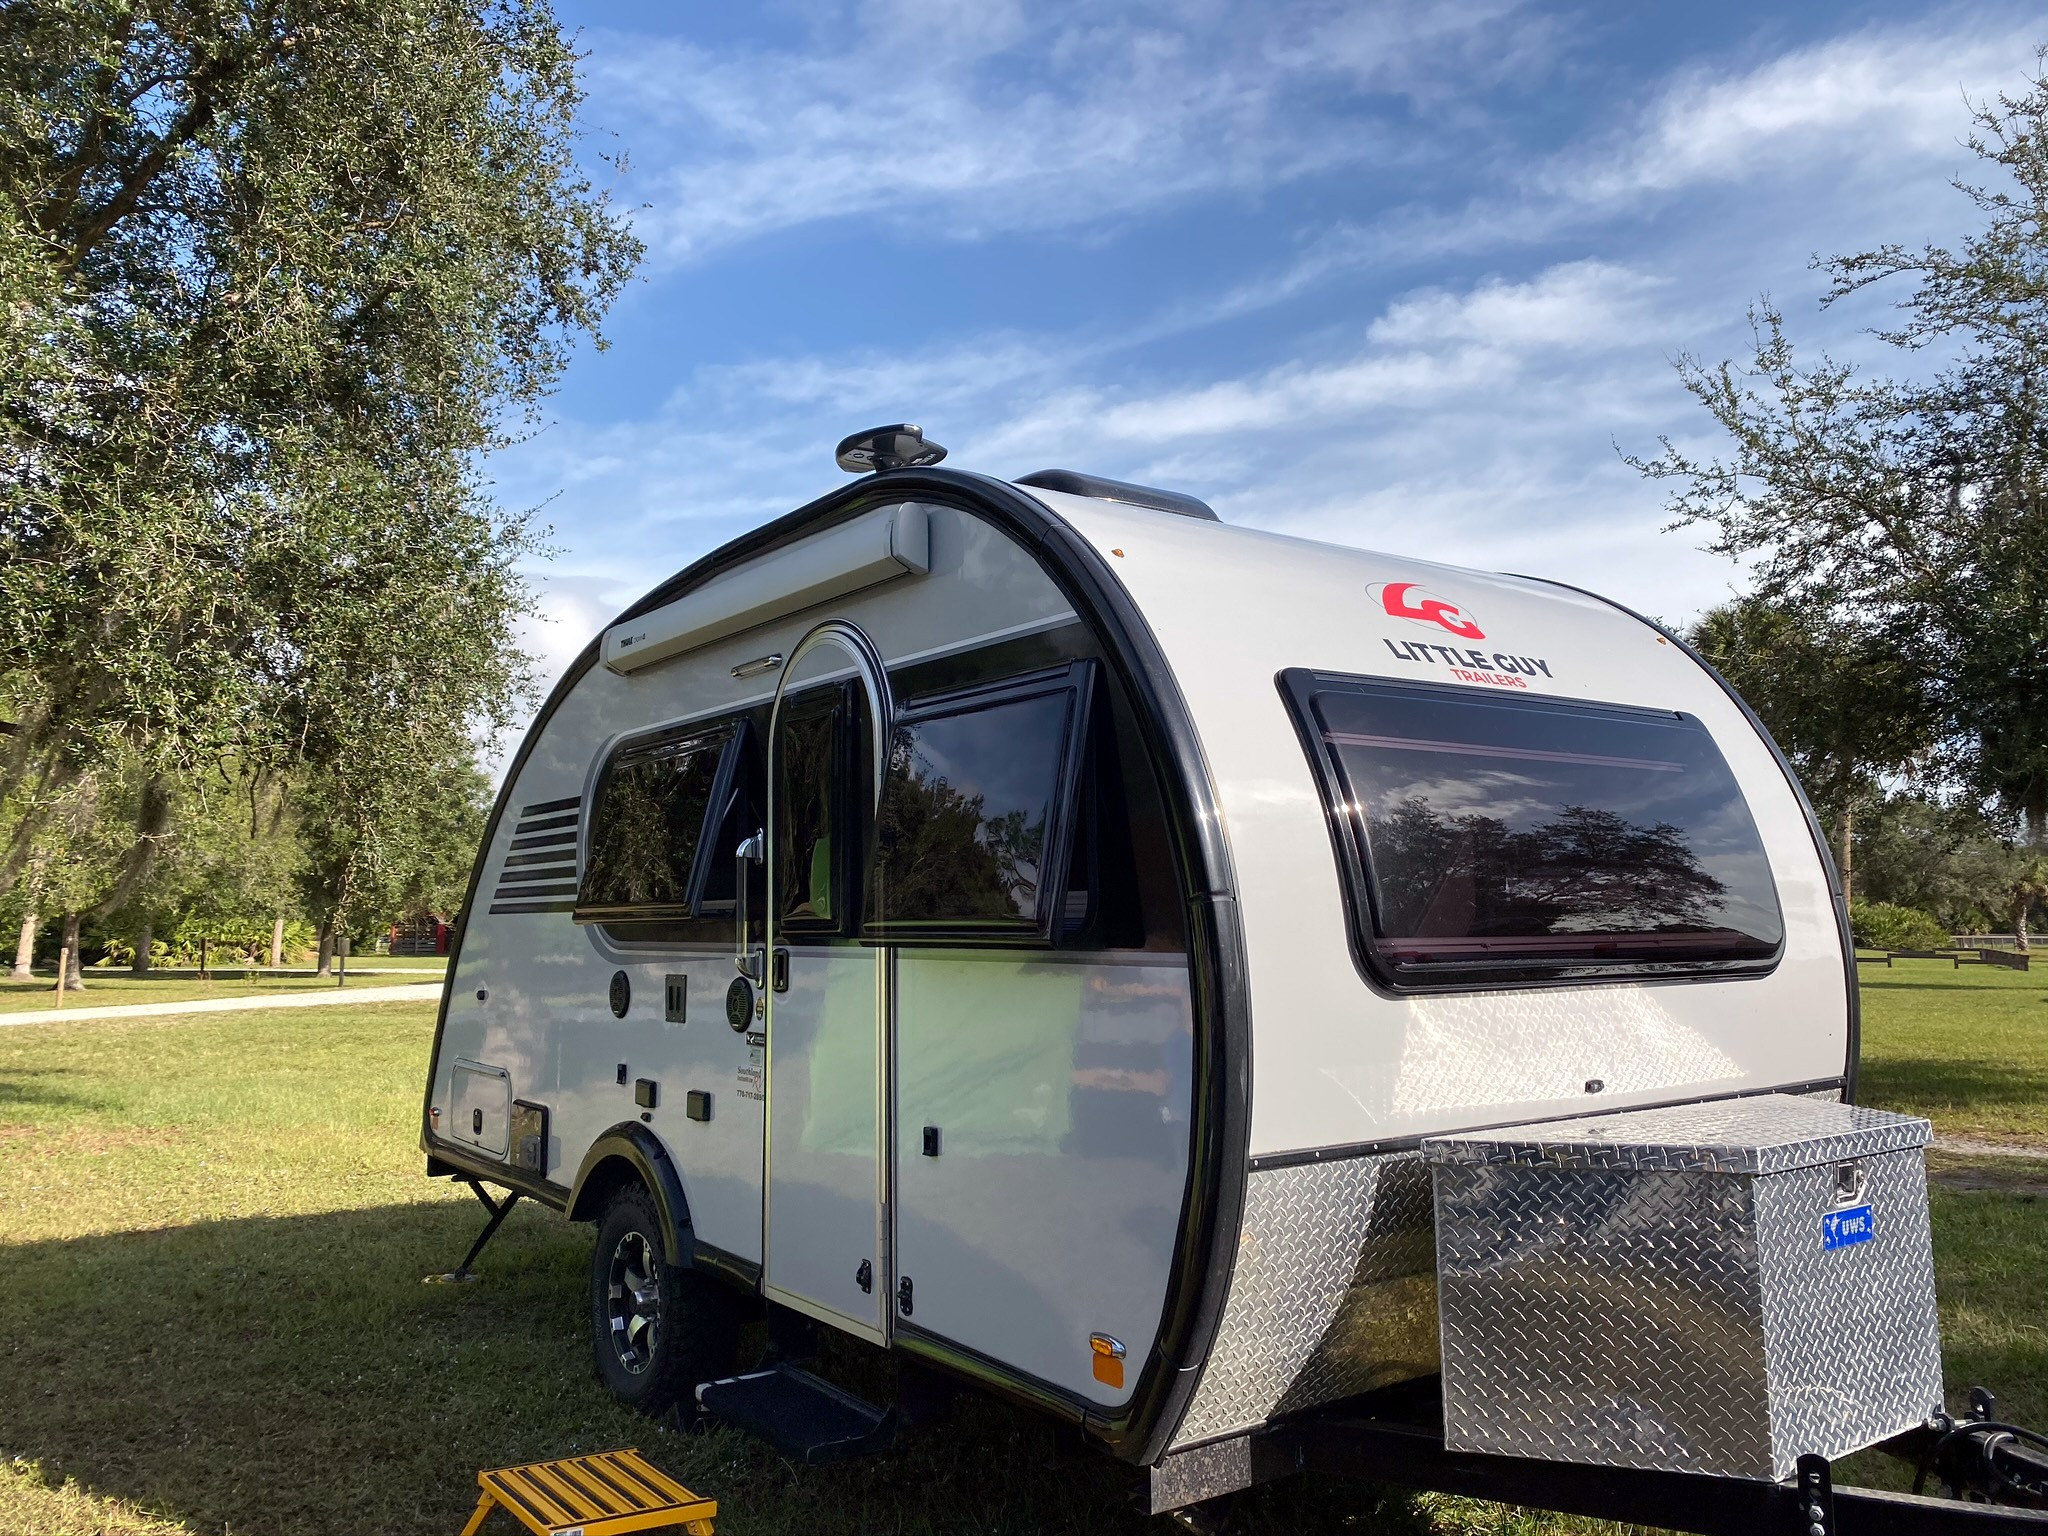 Get out and camp! FREE camping in Florida? Oh yes, you can!